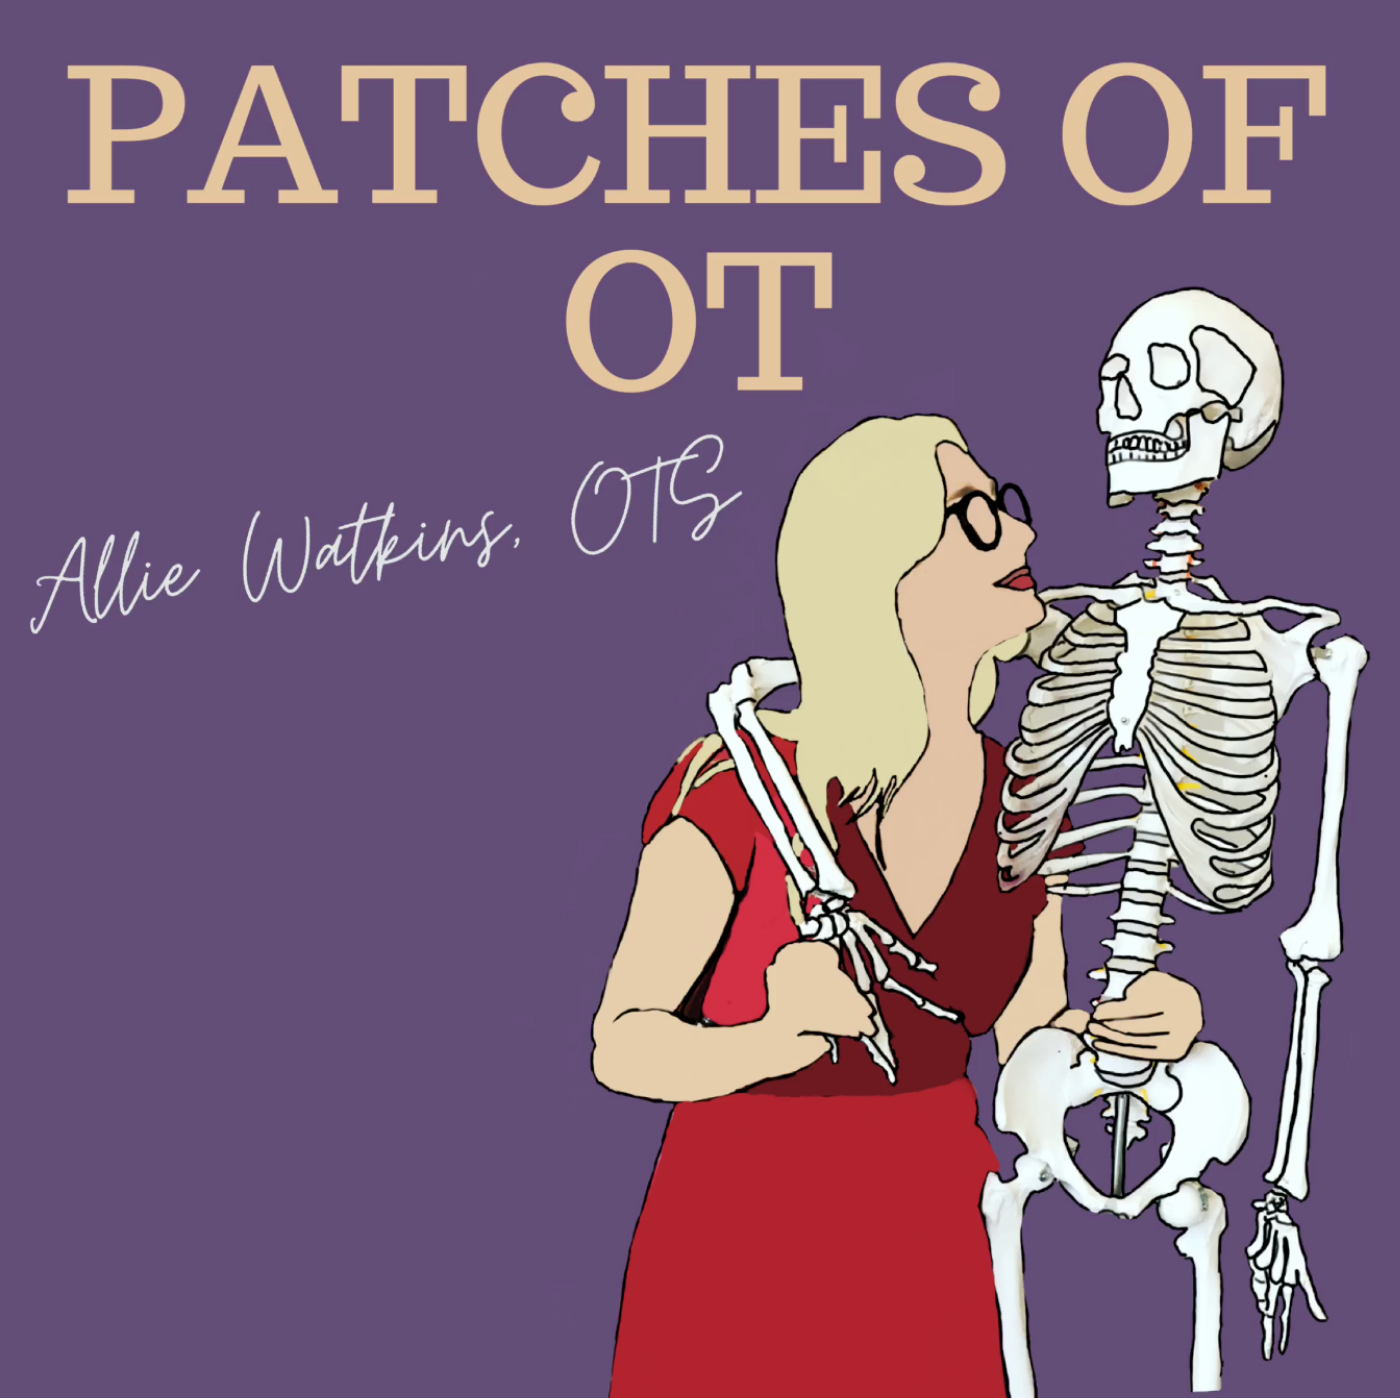 Patches of OT show art